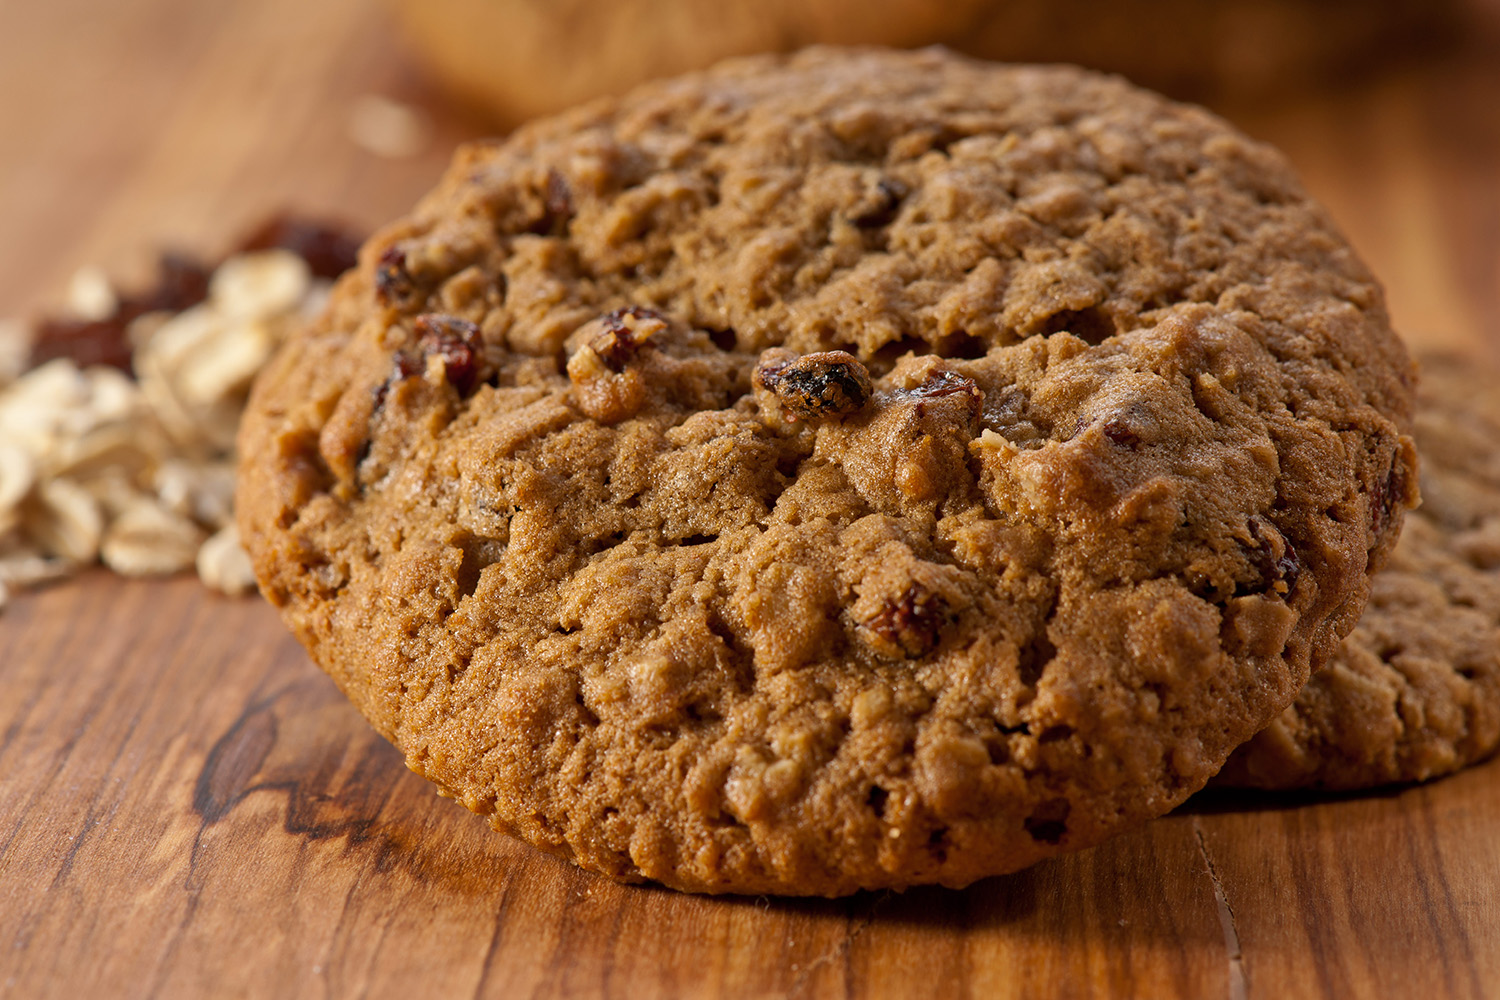 Oatmeal Raisin - Made with a very special blend of Oats, every mouth-watering bite is full of sweet, plump California raisins and complemented with a delicate dash of cinnamon.